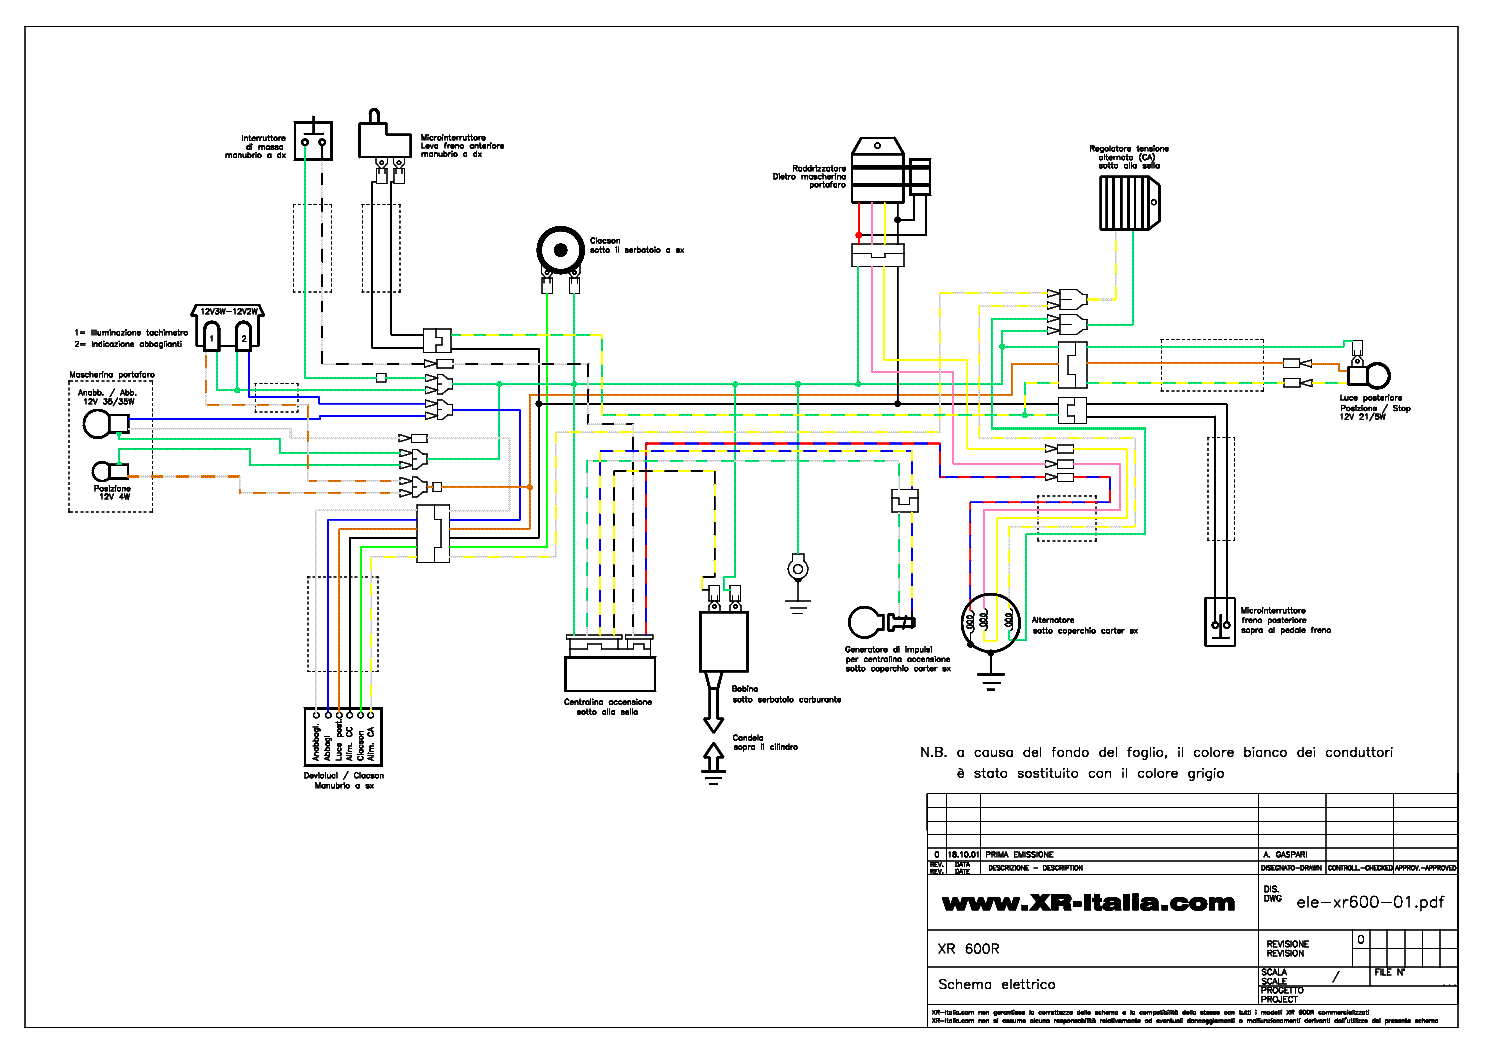 honda_xr_600.pdf_1 xr600 wiring diagram efcaviation com 1995 xr600 wiring diagram at honlapkeszites.co